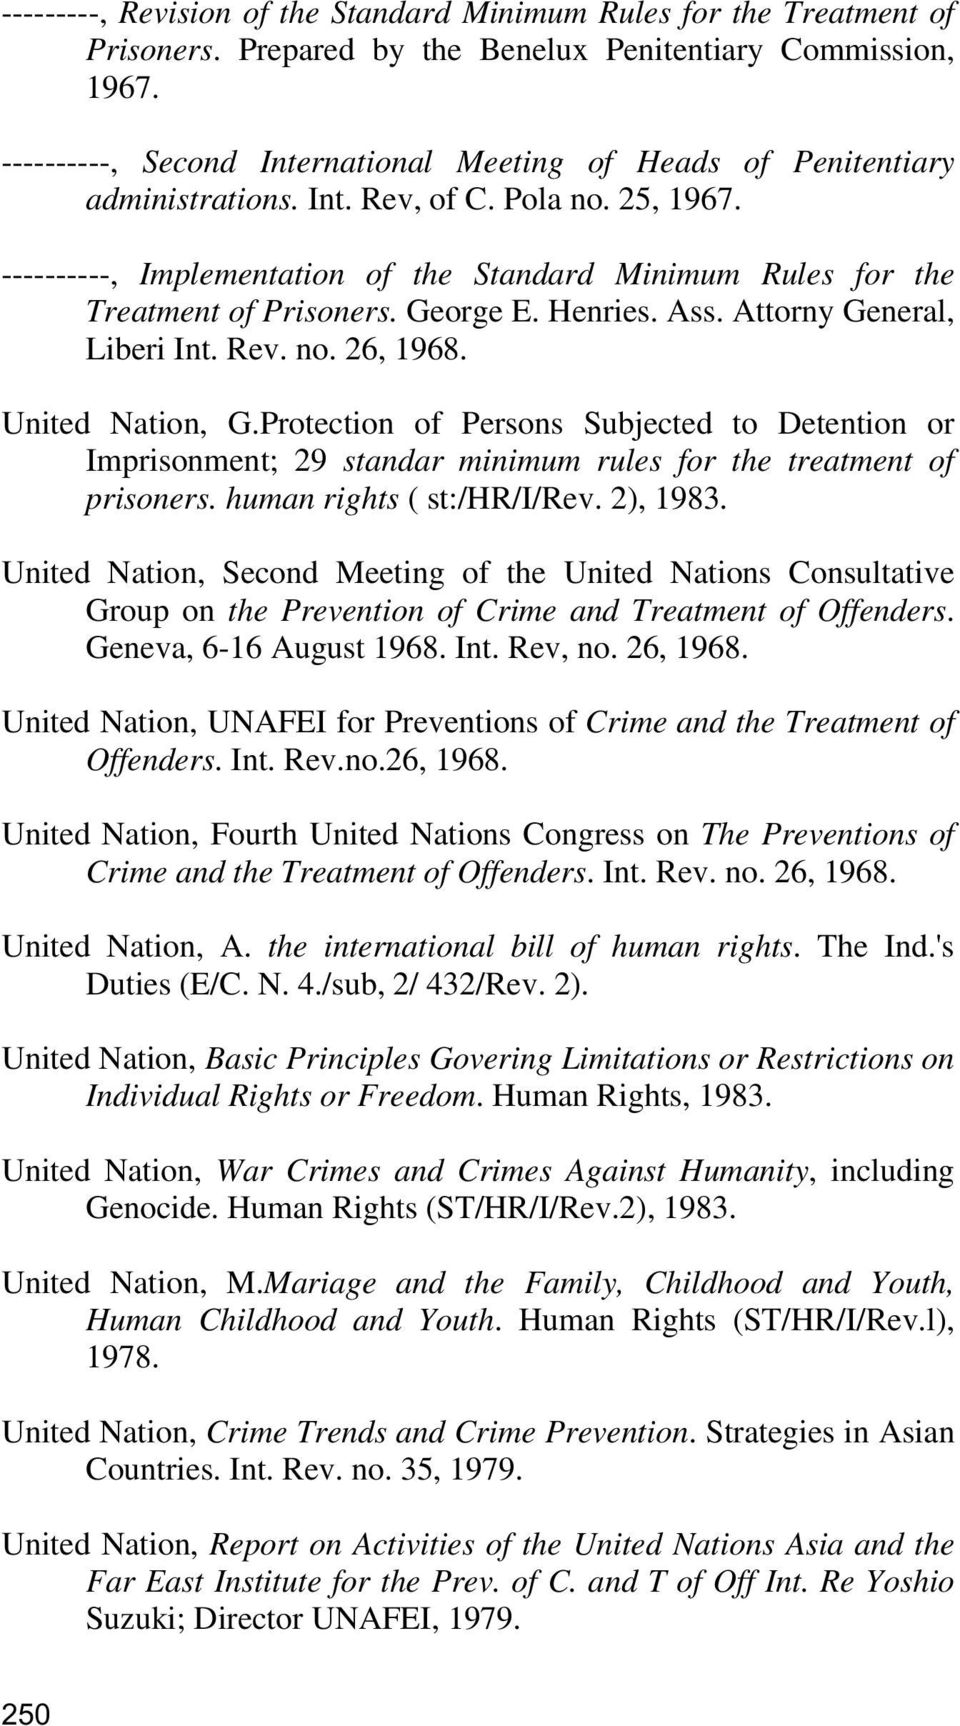 ----------, Implementation of the Standard Minimum Rules for the Treatment of Prisoners. George E. Henries. Ass. Attorny General, Liberi Int. Rev. no. 26, 1968. United Nation, G.